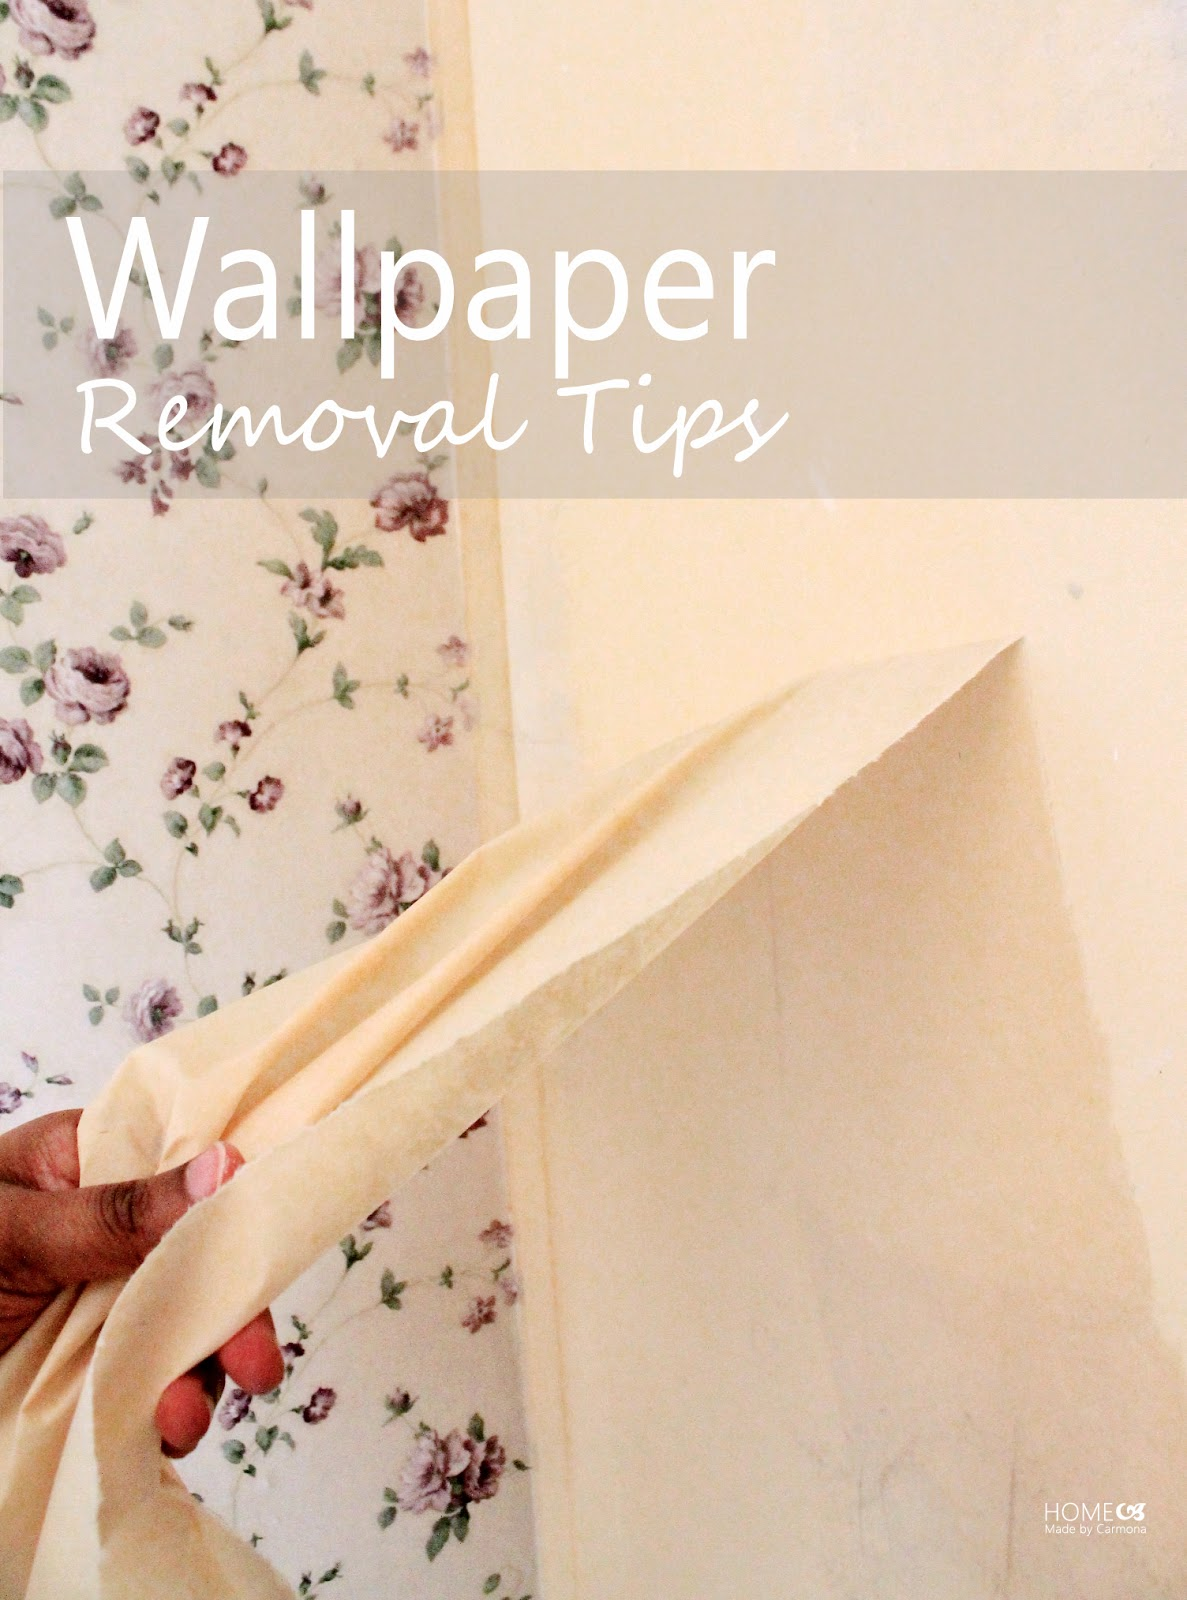 Wallpaper Removal Tips